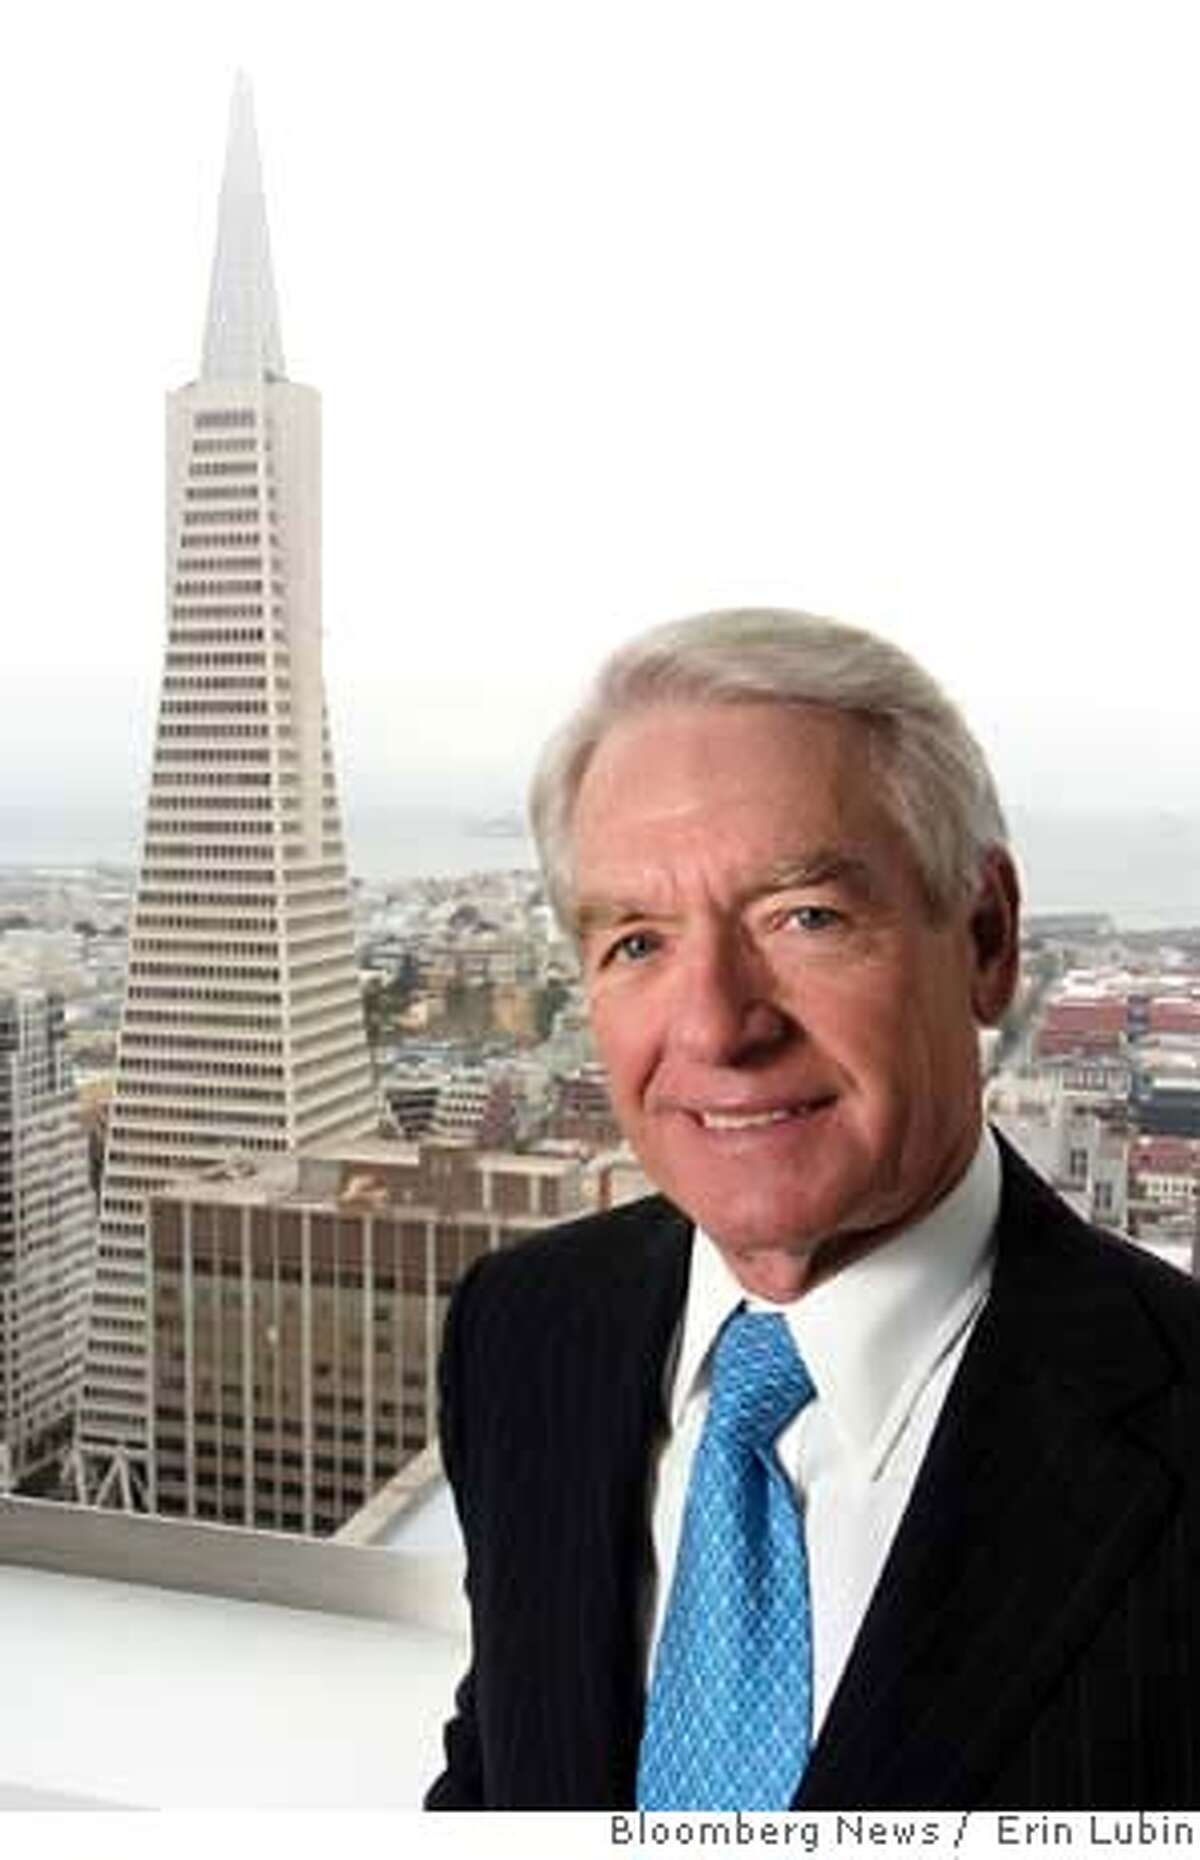 ###Live Caption:Charles Schwab, chairman, chief executive officer and founder, Charles Schwab Corp., stands near a window overlooking the Trans America building in San Francisco, California, on Friday, May 11, 2007. Photographer: Erin Lubin/Bloomberg News.###Caption History:Charles Schwab, chairman, chief executive officer and founder, Charles Schwab Corp., stands near a window overlooking the Trans America building in San Francisco, California, on Friday, May 11, 2007. Photographer: Erin Lubin/Bloomberg News.###Notes:###Special Instructions: